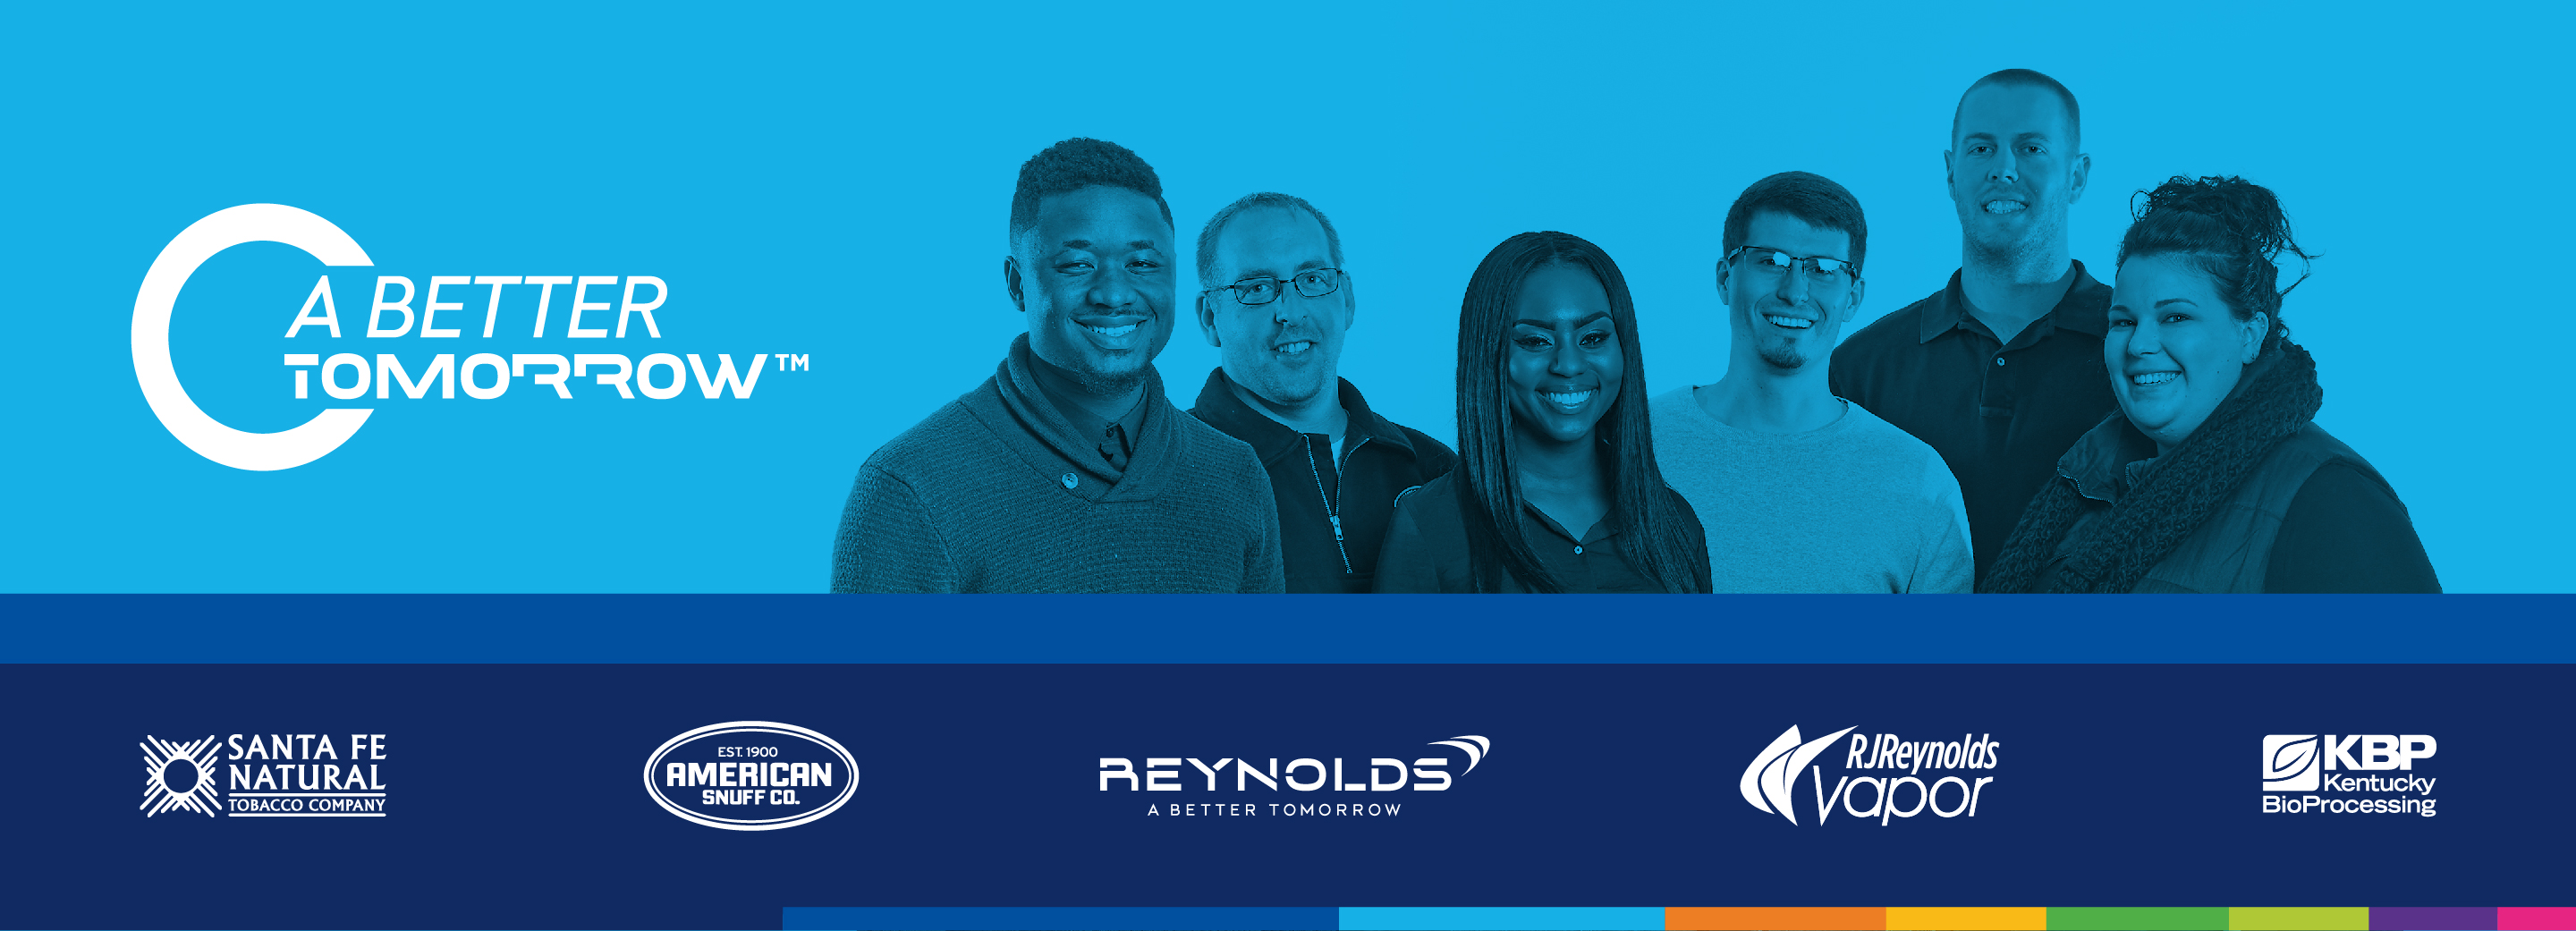 Reynolds American Homepage Header Image - A Better Tomorrow